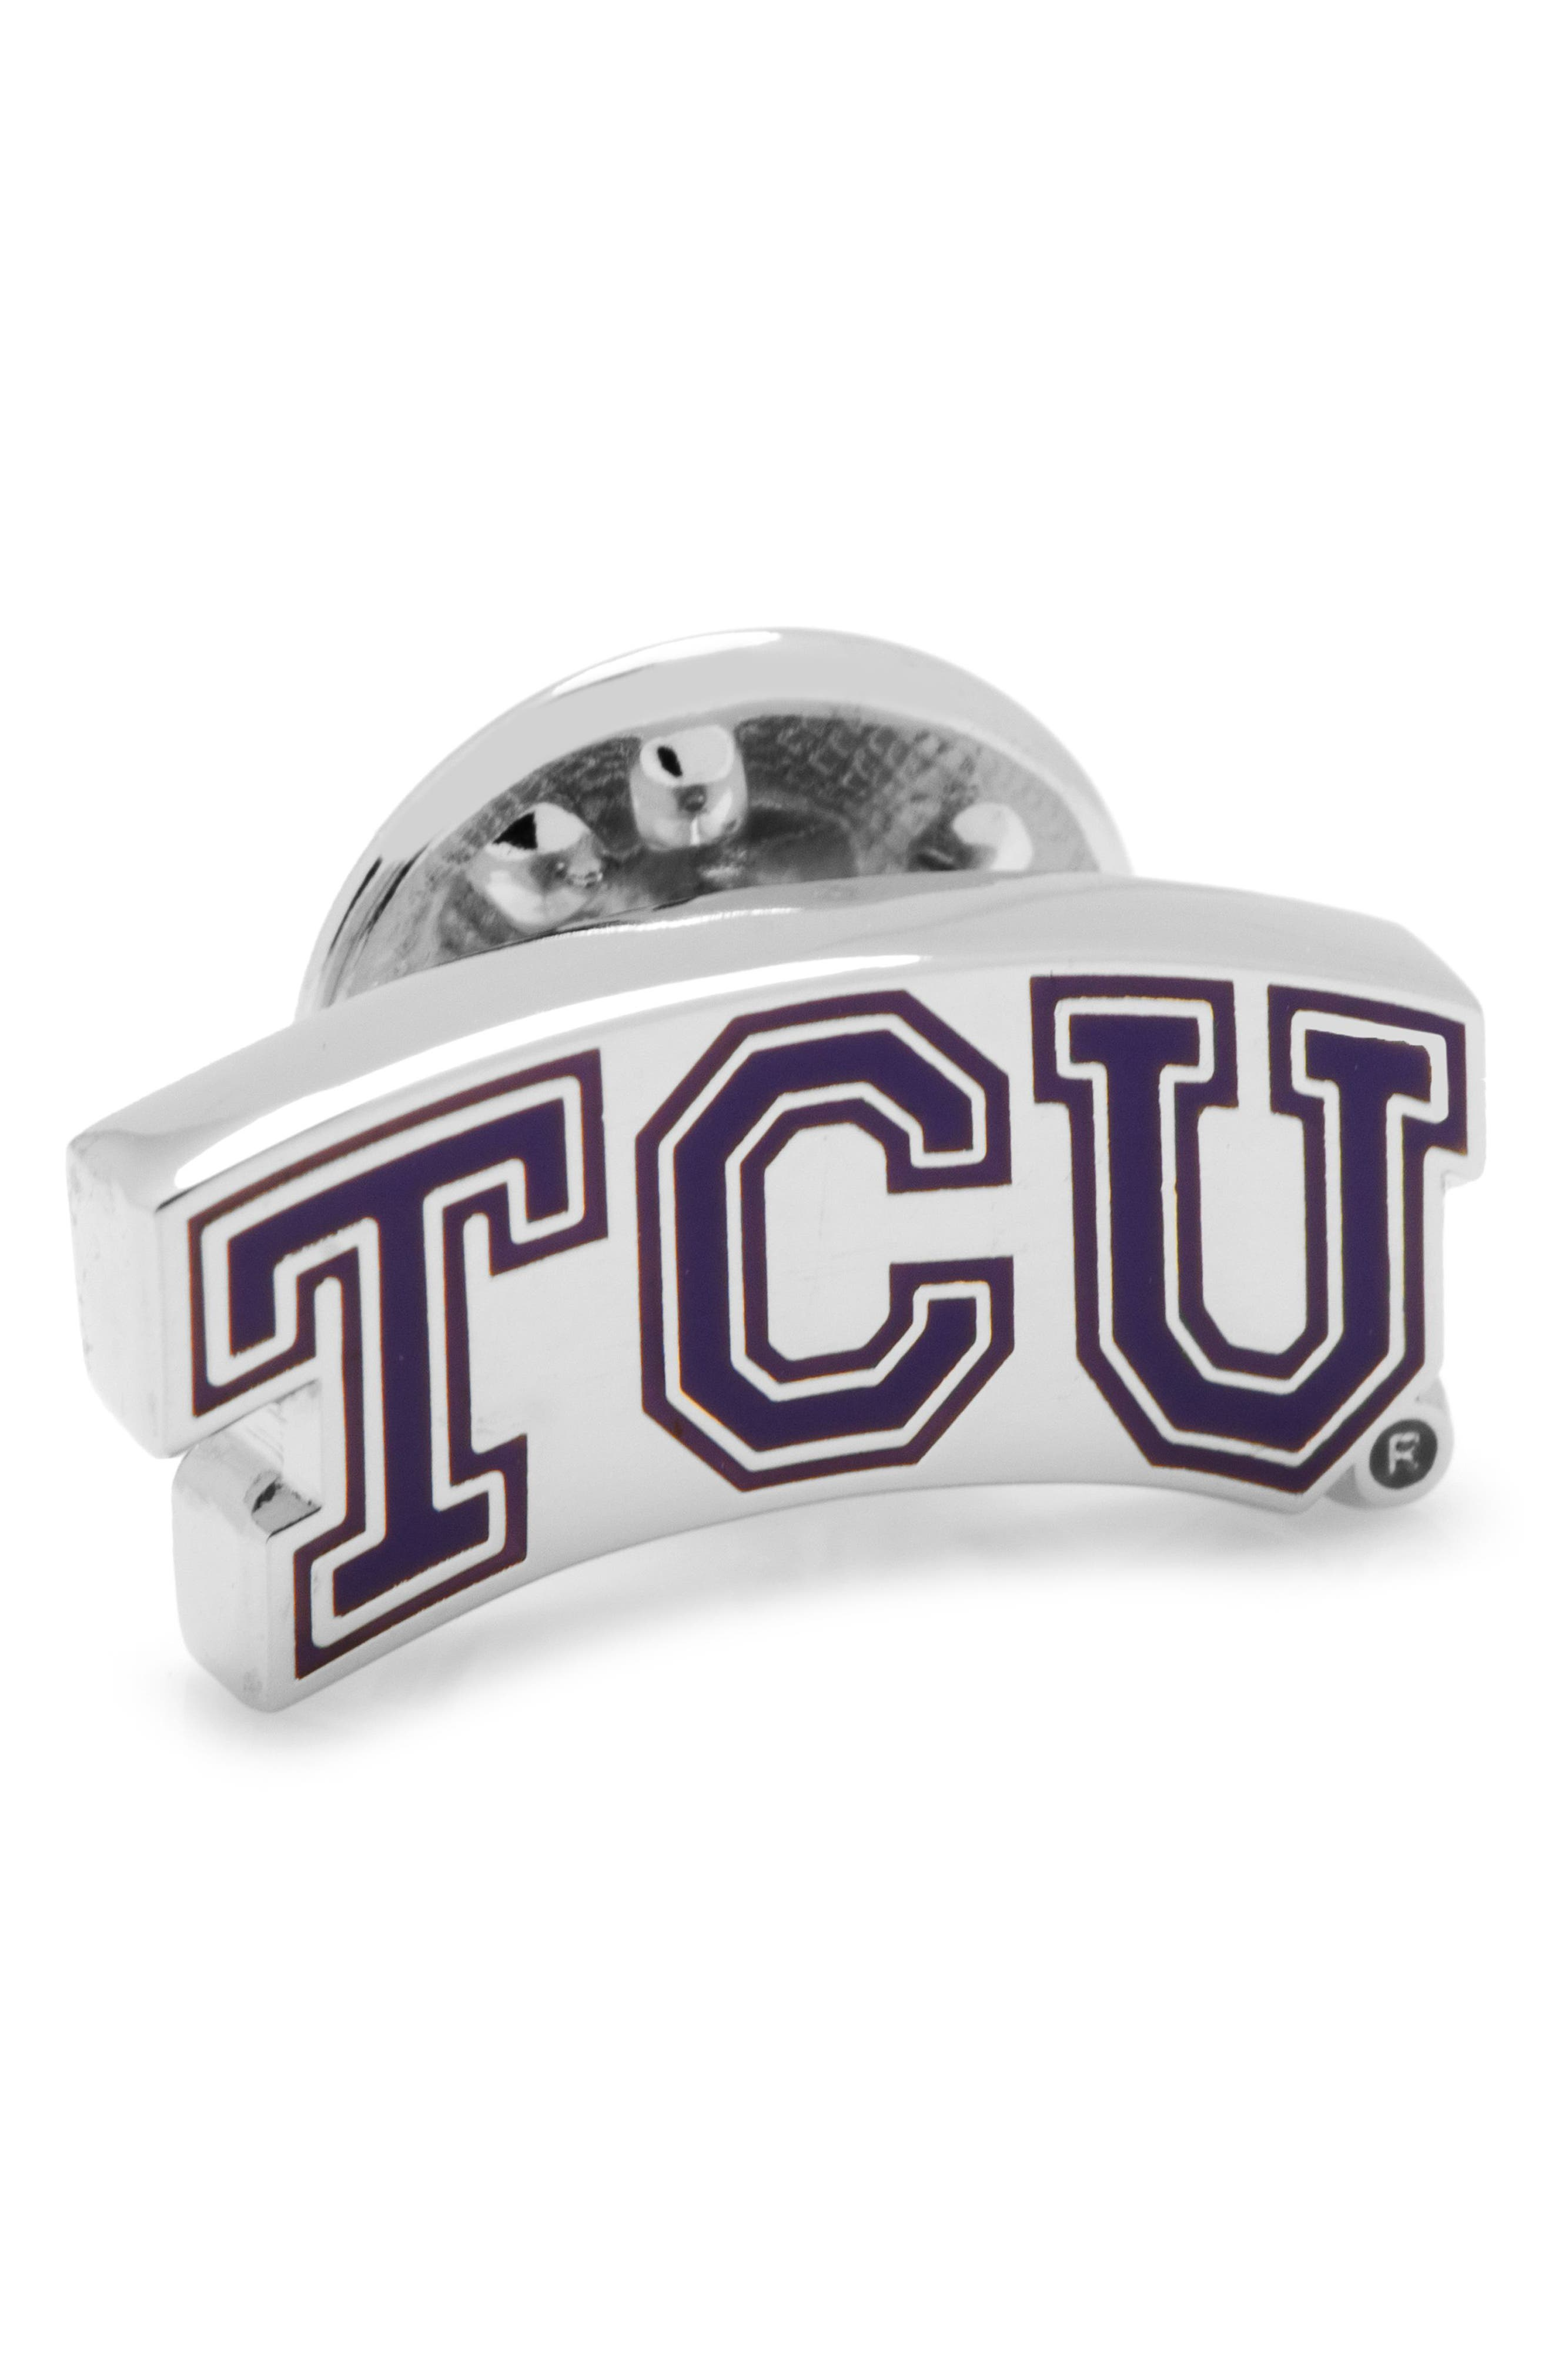 TCU Horned Frogs Lapel Pin,                             Main thumbnail 1, color,                             PURPLE